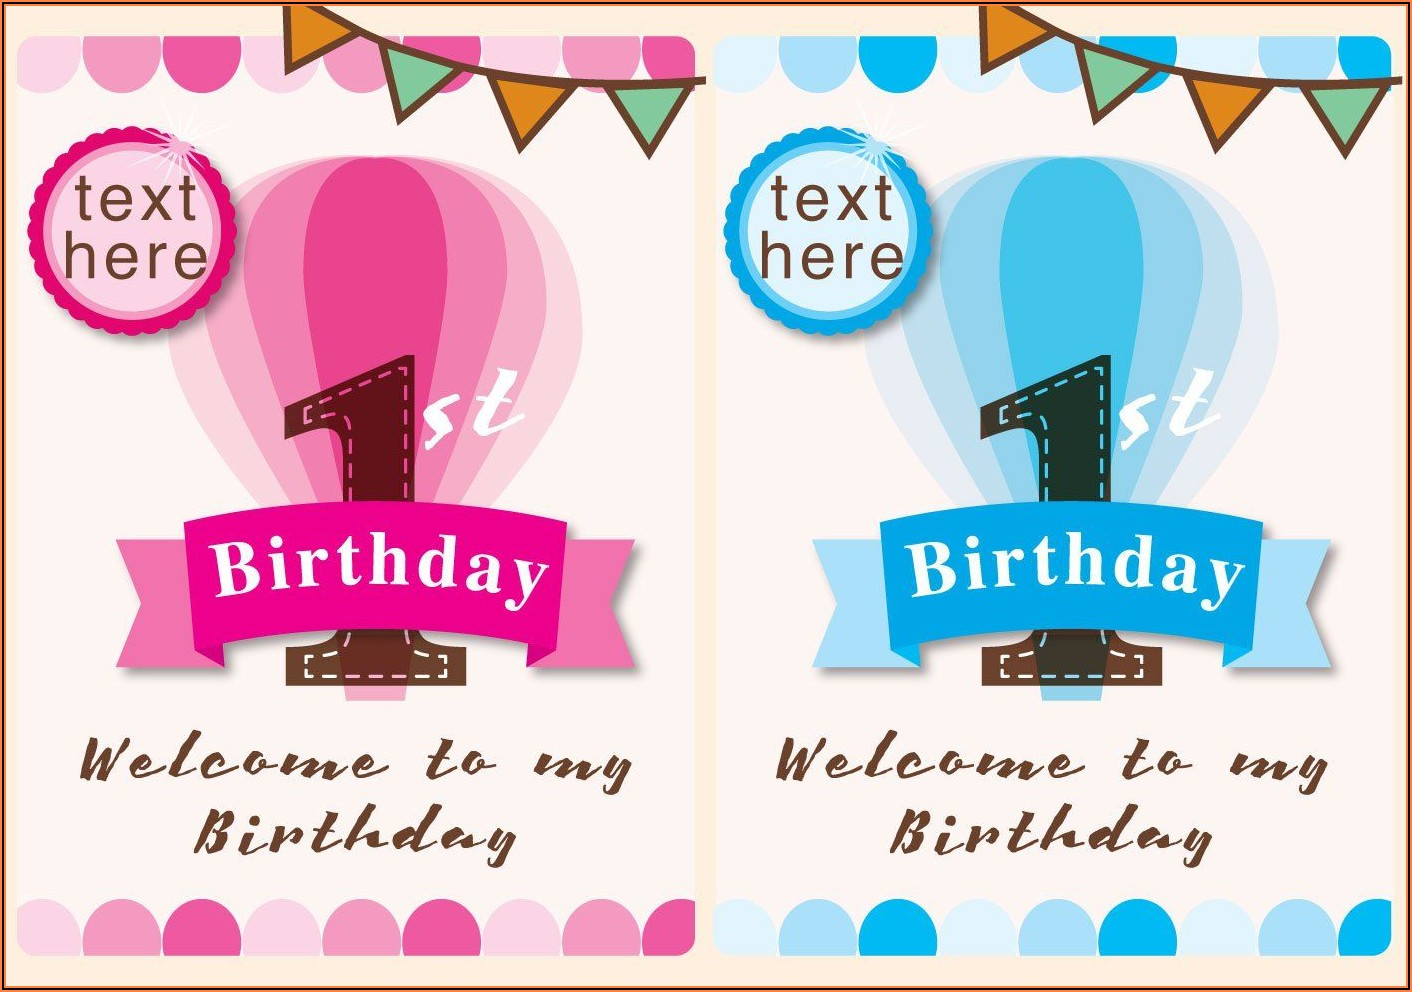 1st Birthday Invitation Wording Samples In Tamil